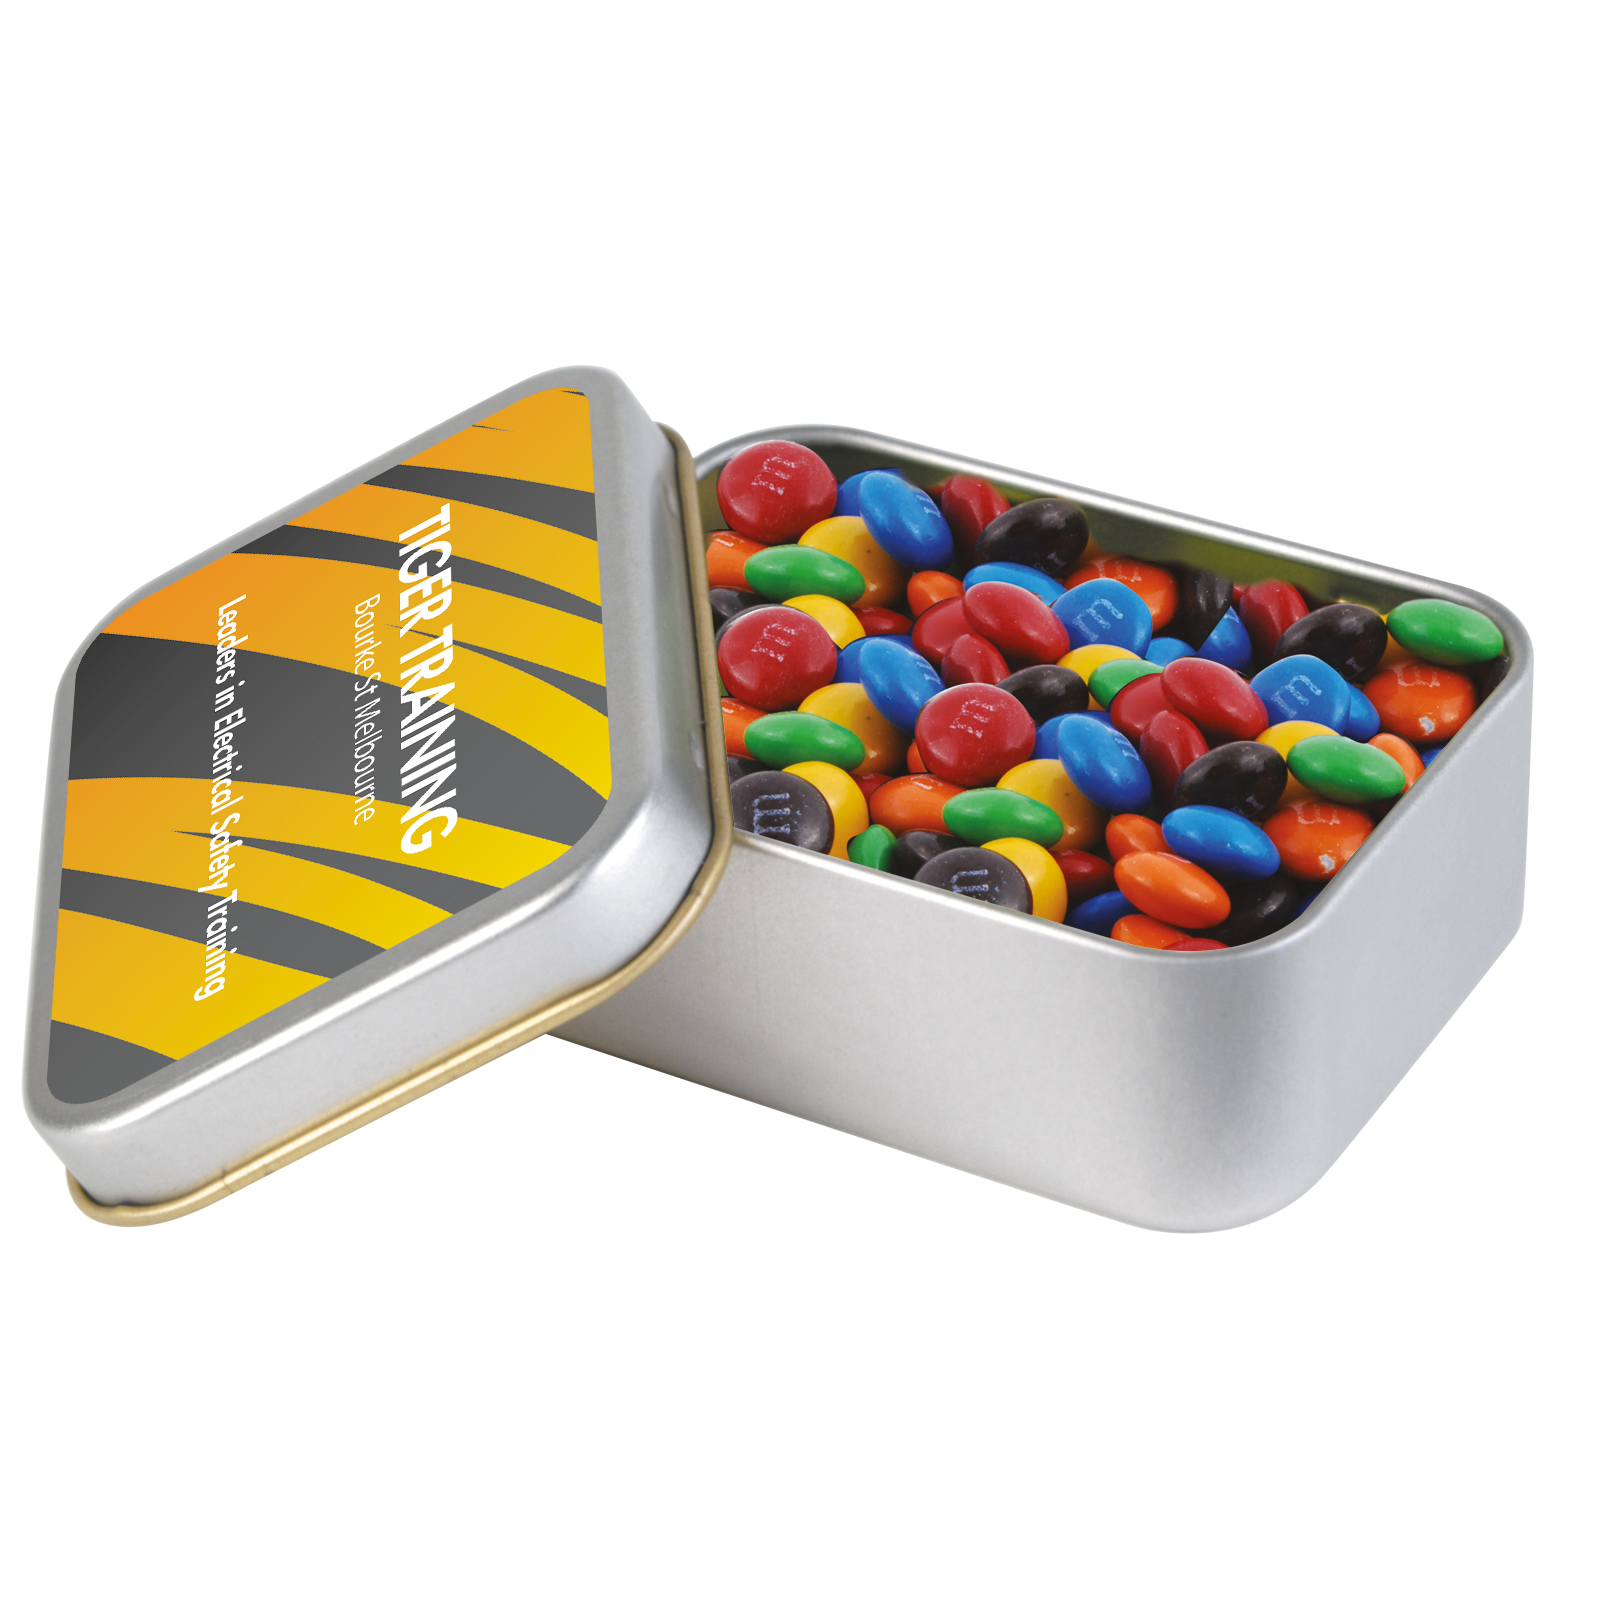 M&M's in Silver Rectangular Tin - 1 Col 1 Pos Print